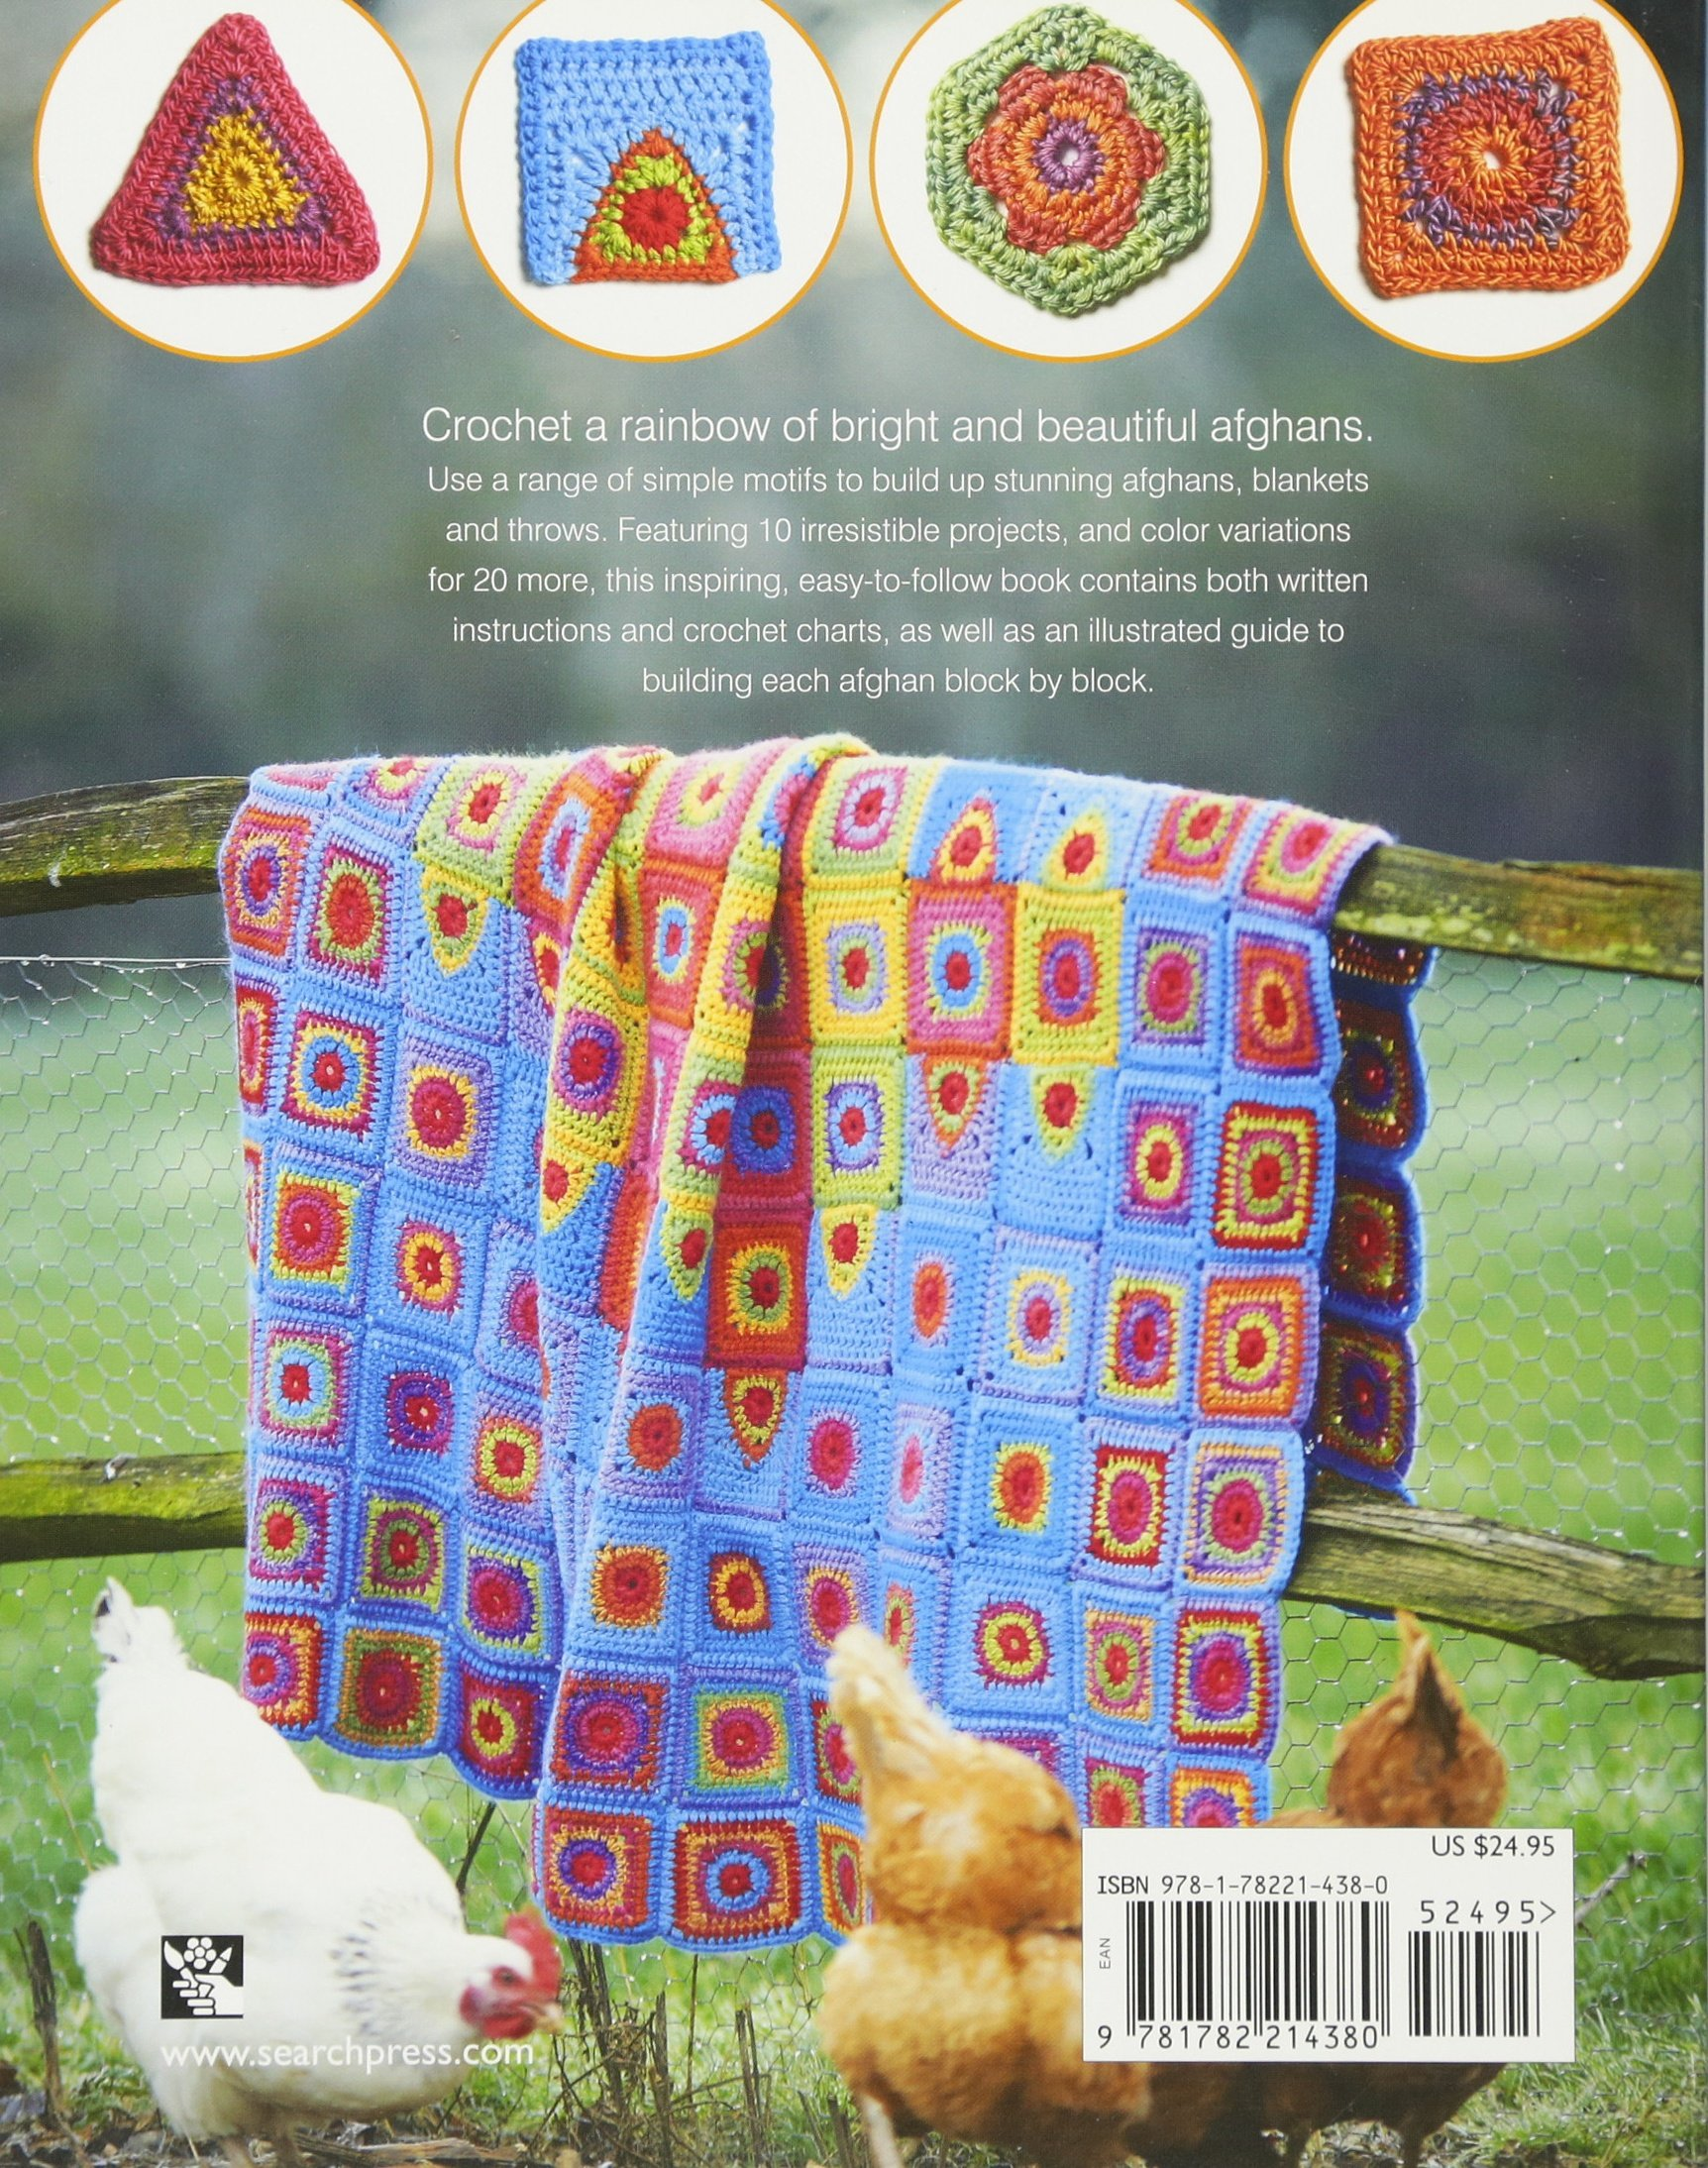 Rainbow Crocheted Afghans: A block-by-block guide to creating 10 colorful  blankets and throws: Amanda Perkins: 9781782214380: Amazon.com: Books